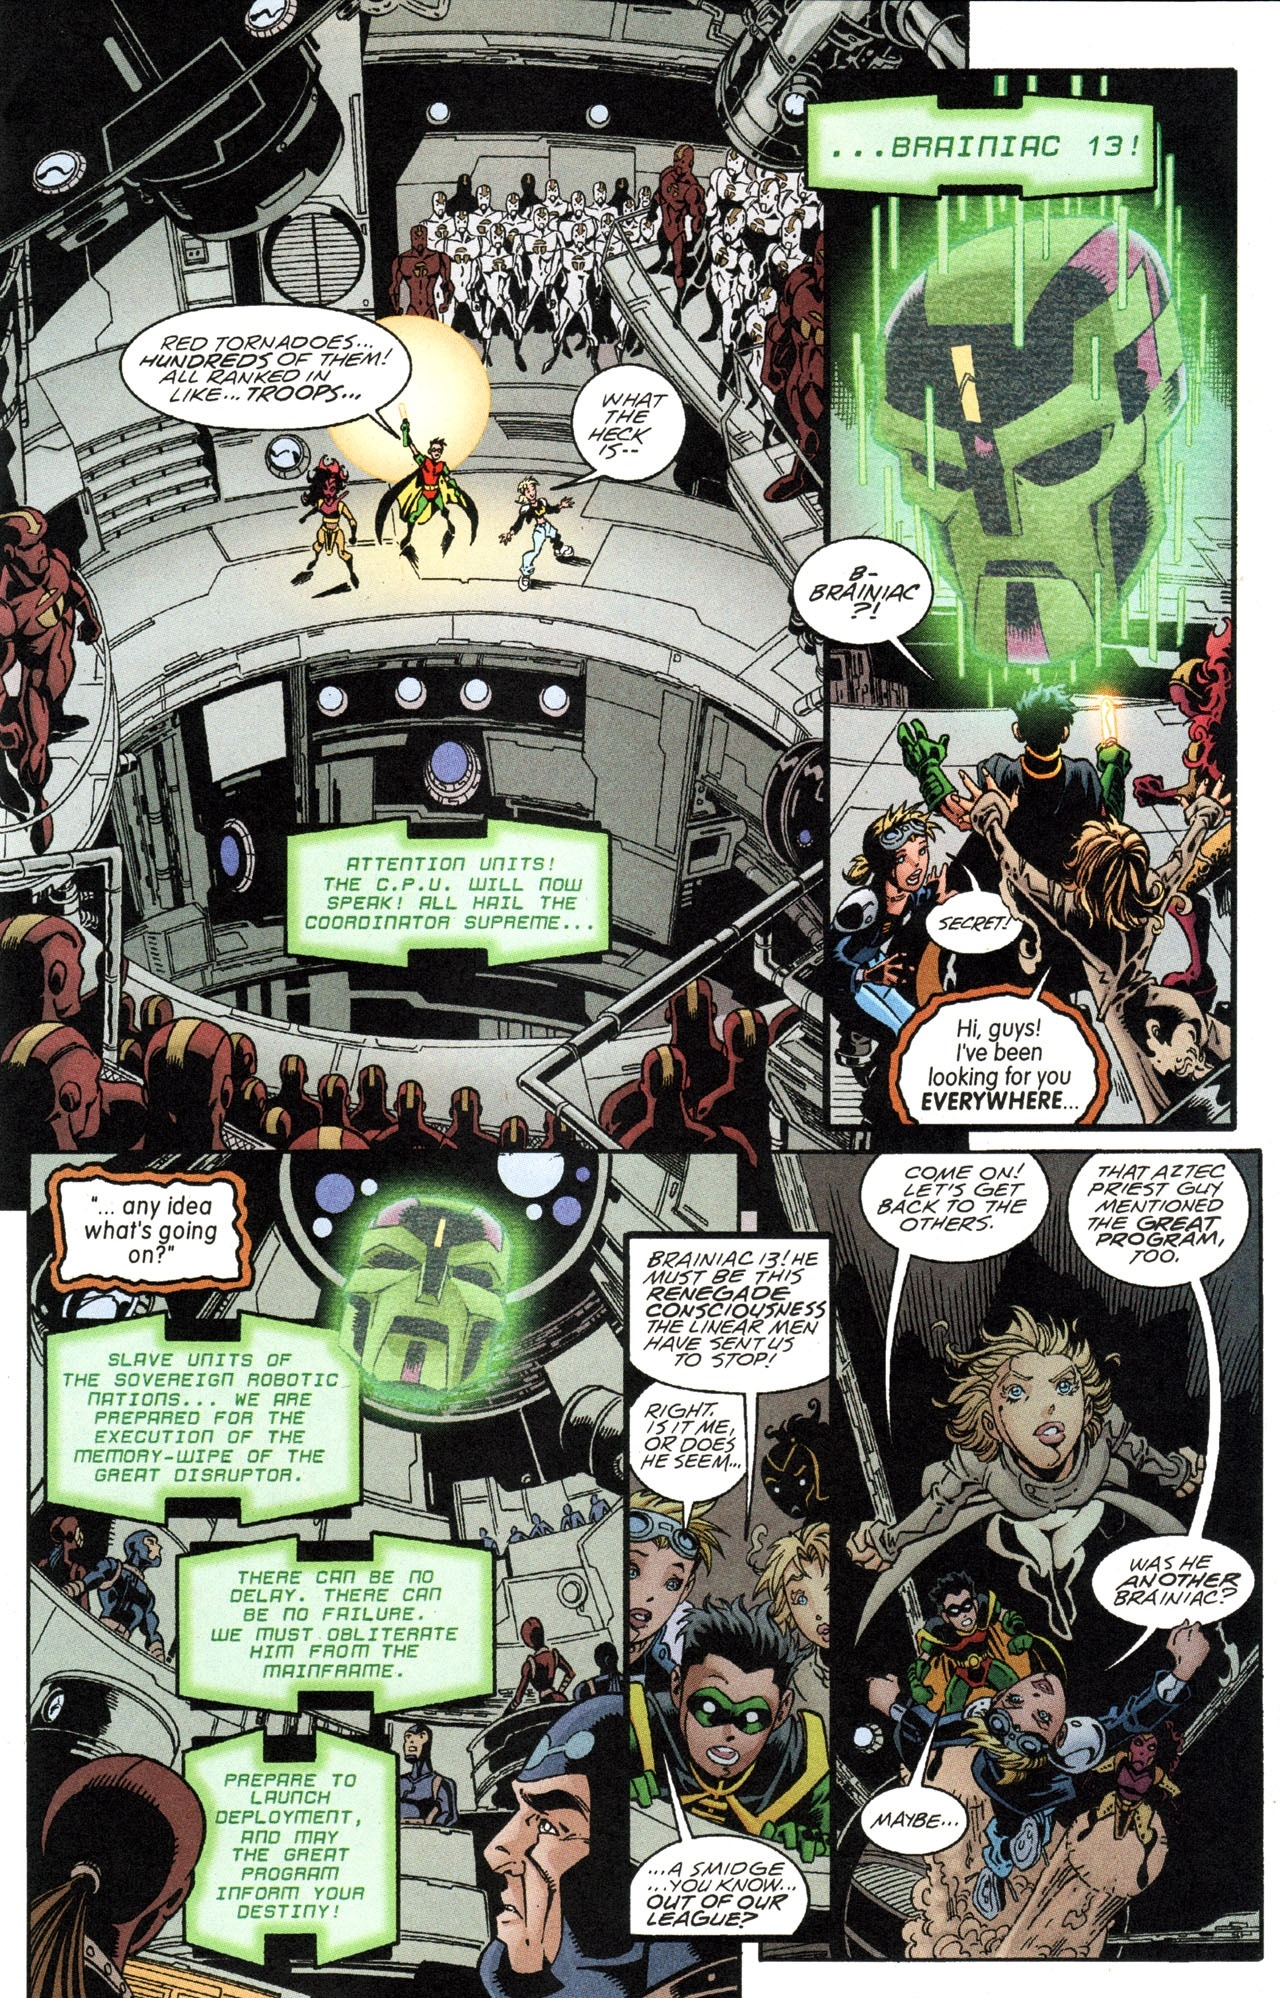 Young Justice: Our Worlds At War (2001) #1 pg14, lettered by John Workman.